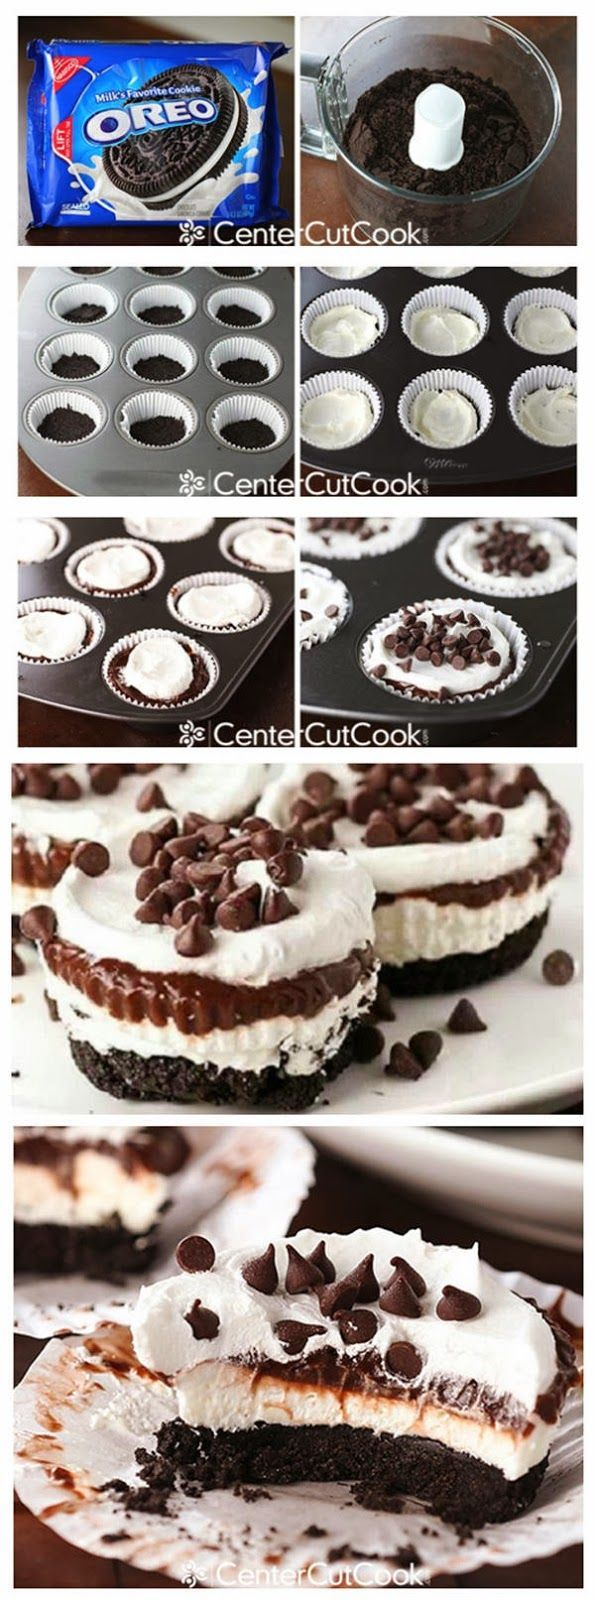 Chocolate Lasagna Cupcakes.....someone please give me an excuse to make these!!!!!!.